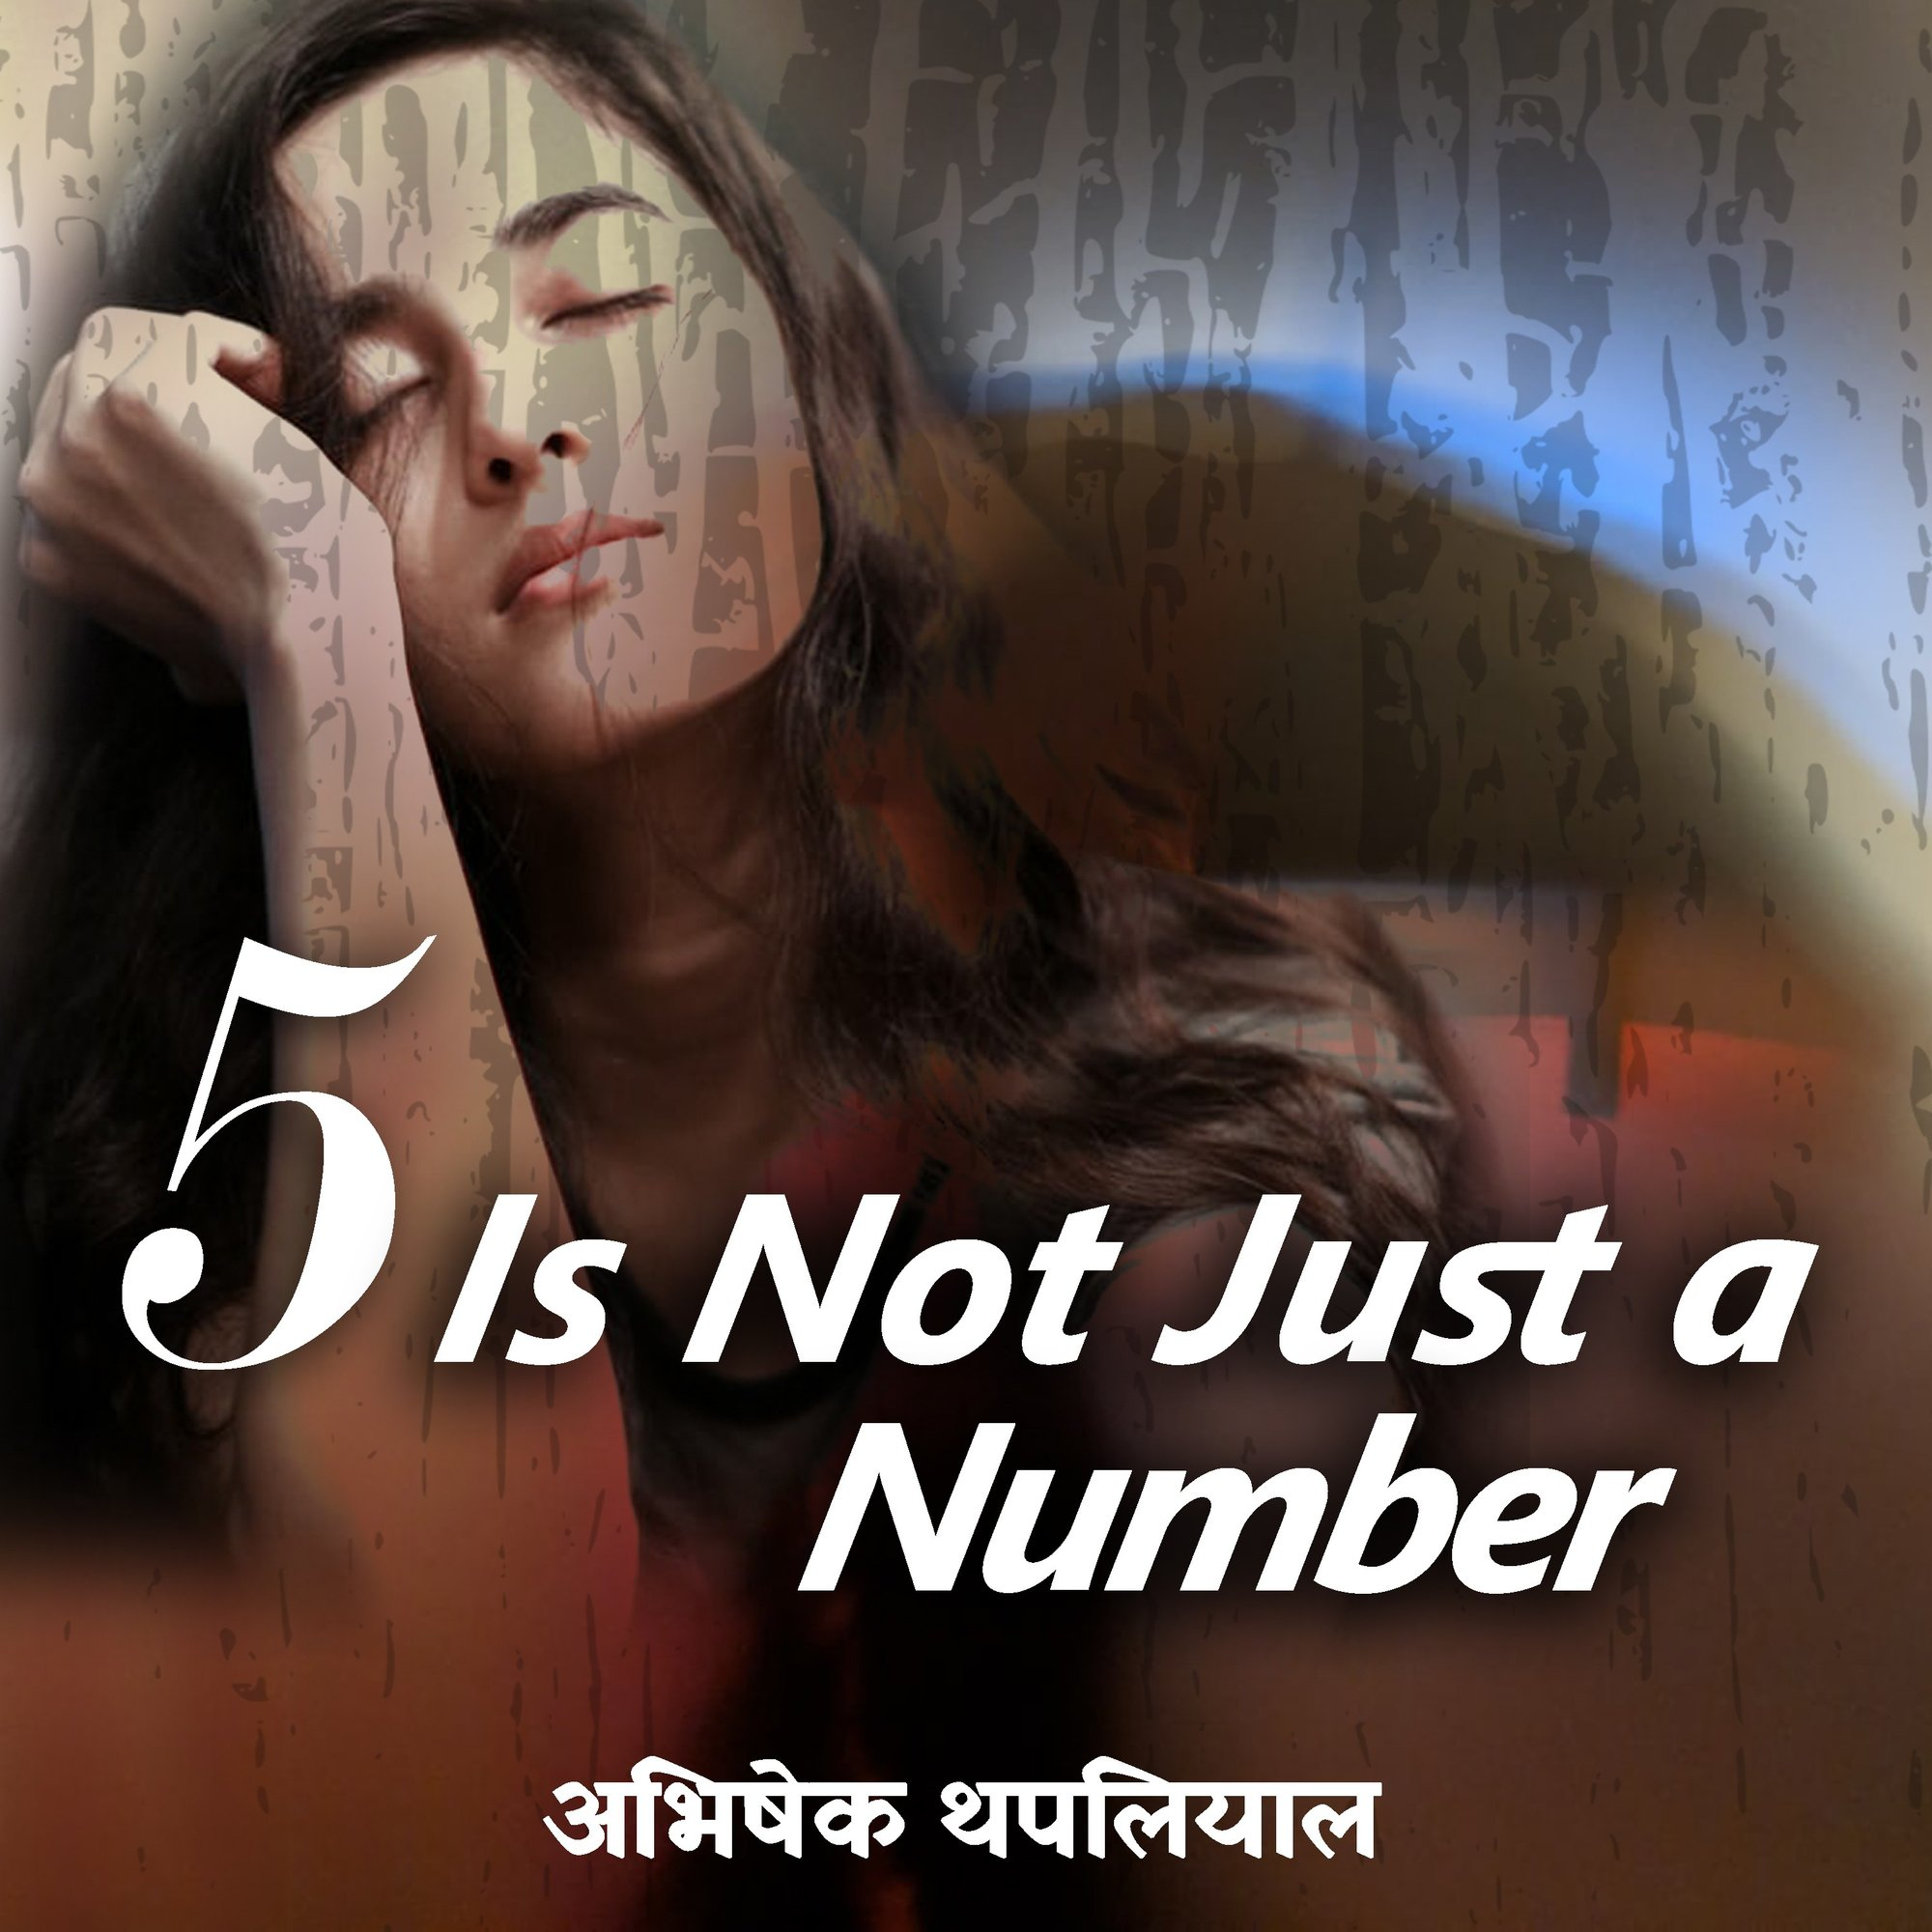 Five is Not Just a Number | Writer - Abhishek Thapliyal |